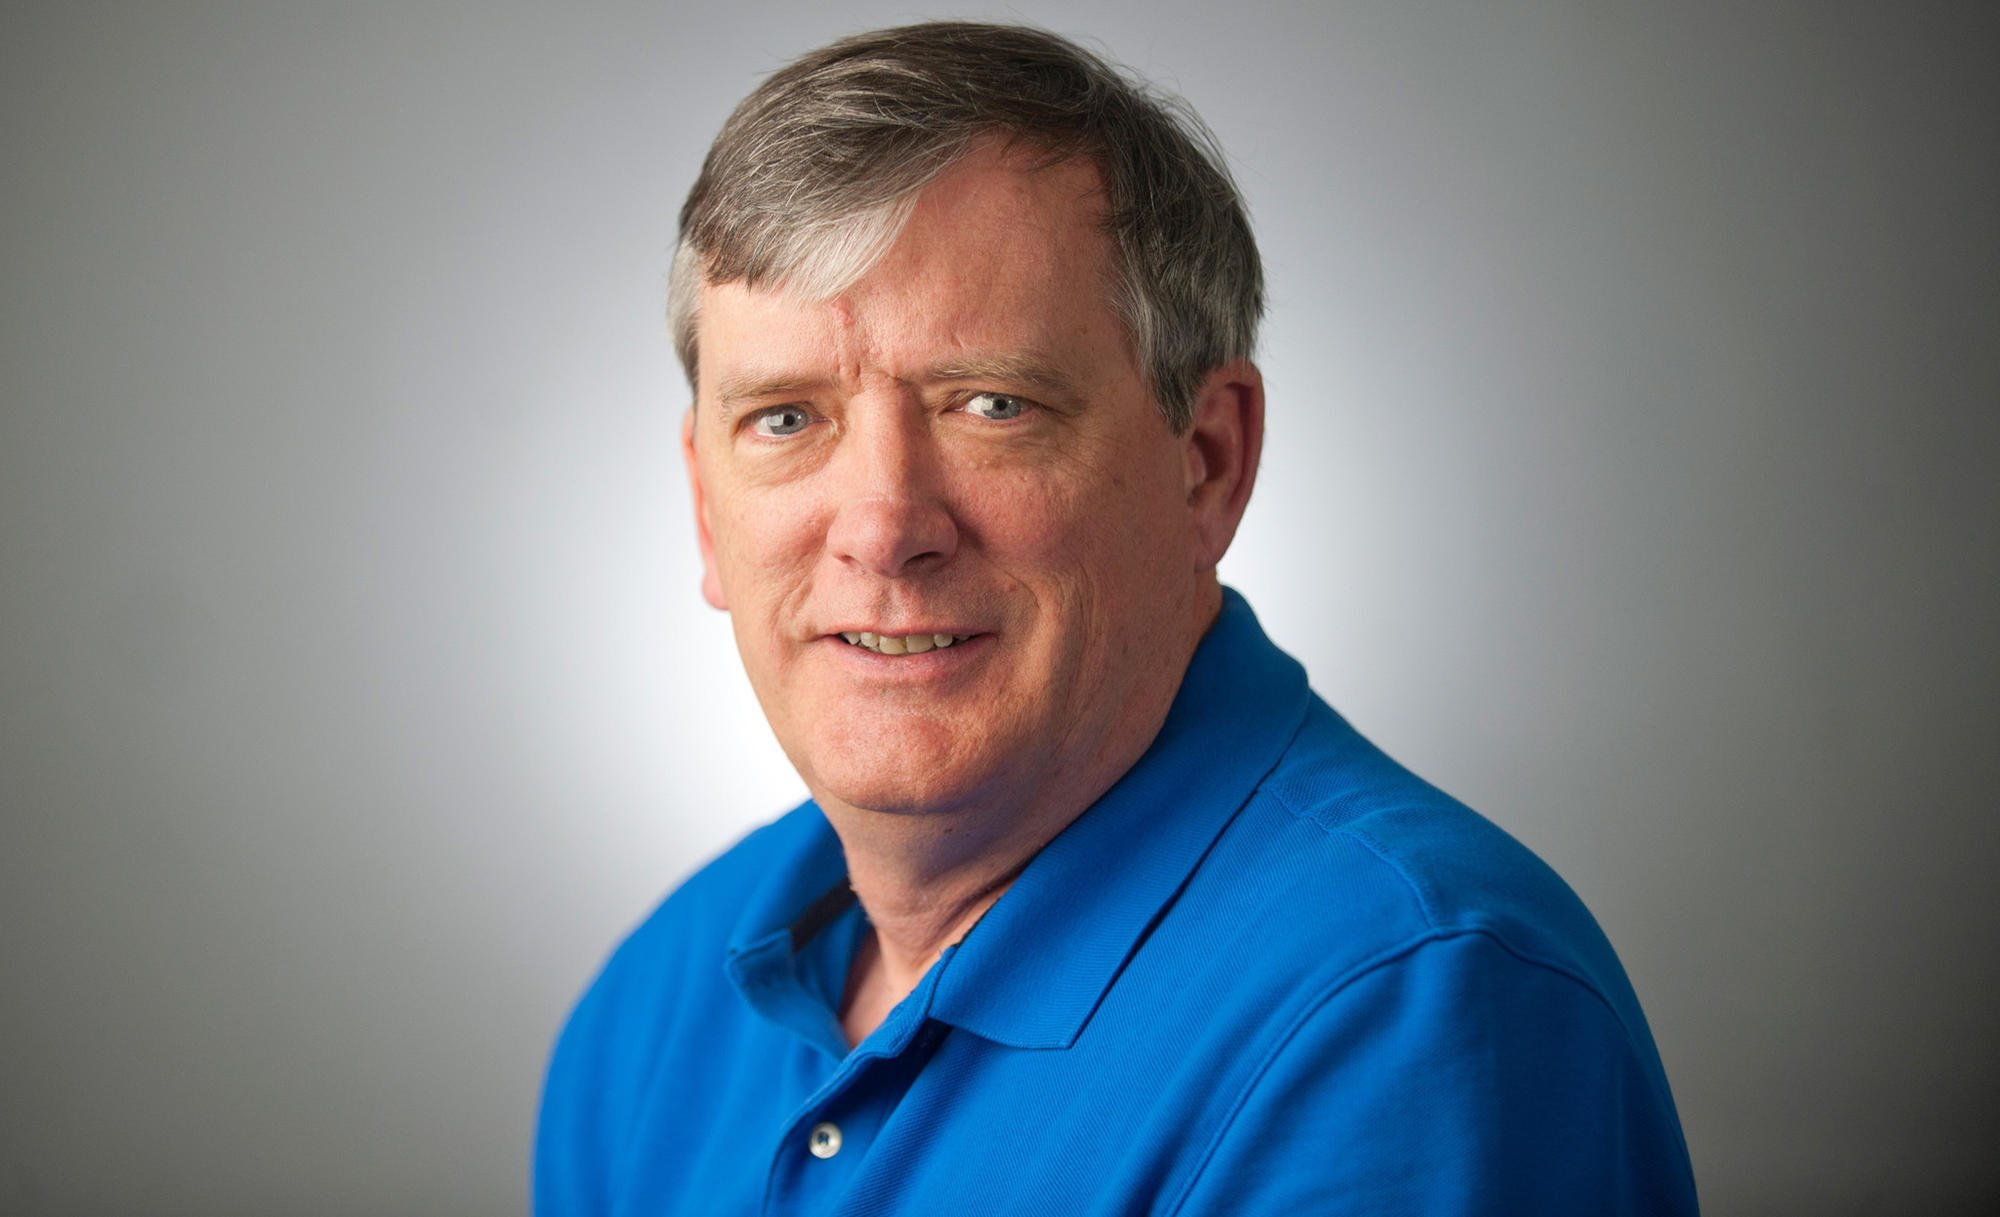 This image obtained from the Capital Gazette shows Capital Gazette writer John McNamara, one of the victims of the June 28, 2018, shooting at the newspaper in Annapolis, Maryland.